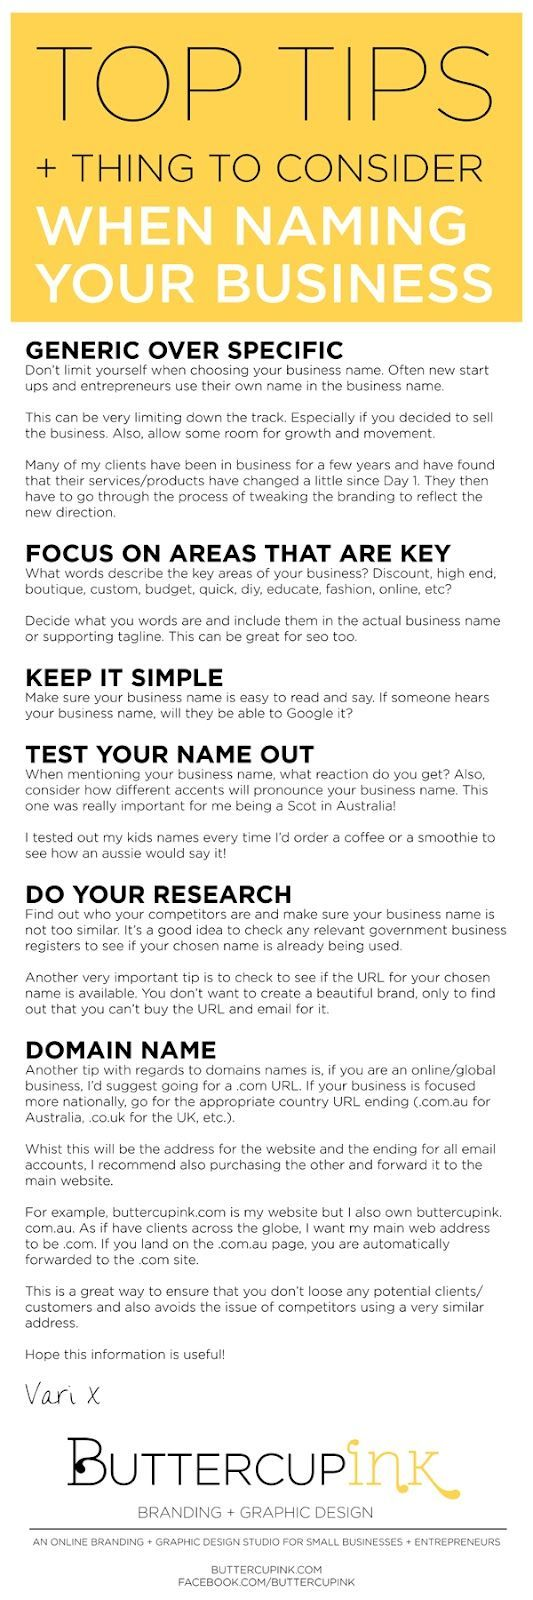 When choosing a business name... | Business Tips | Pinterest ...